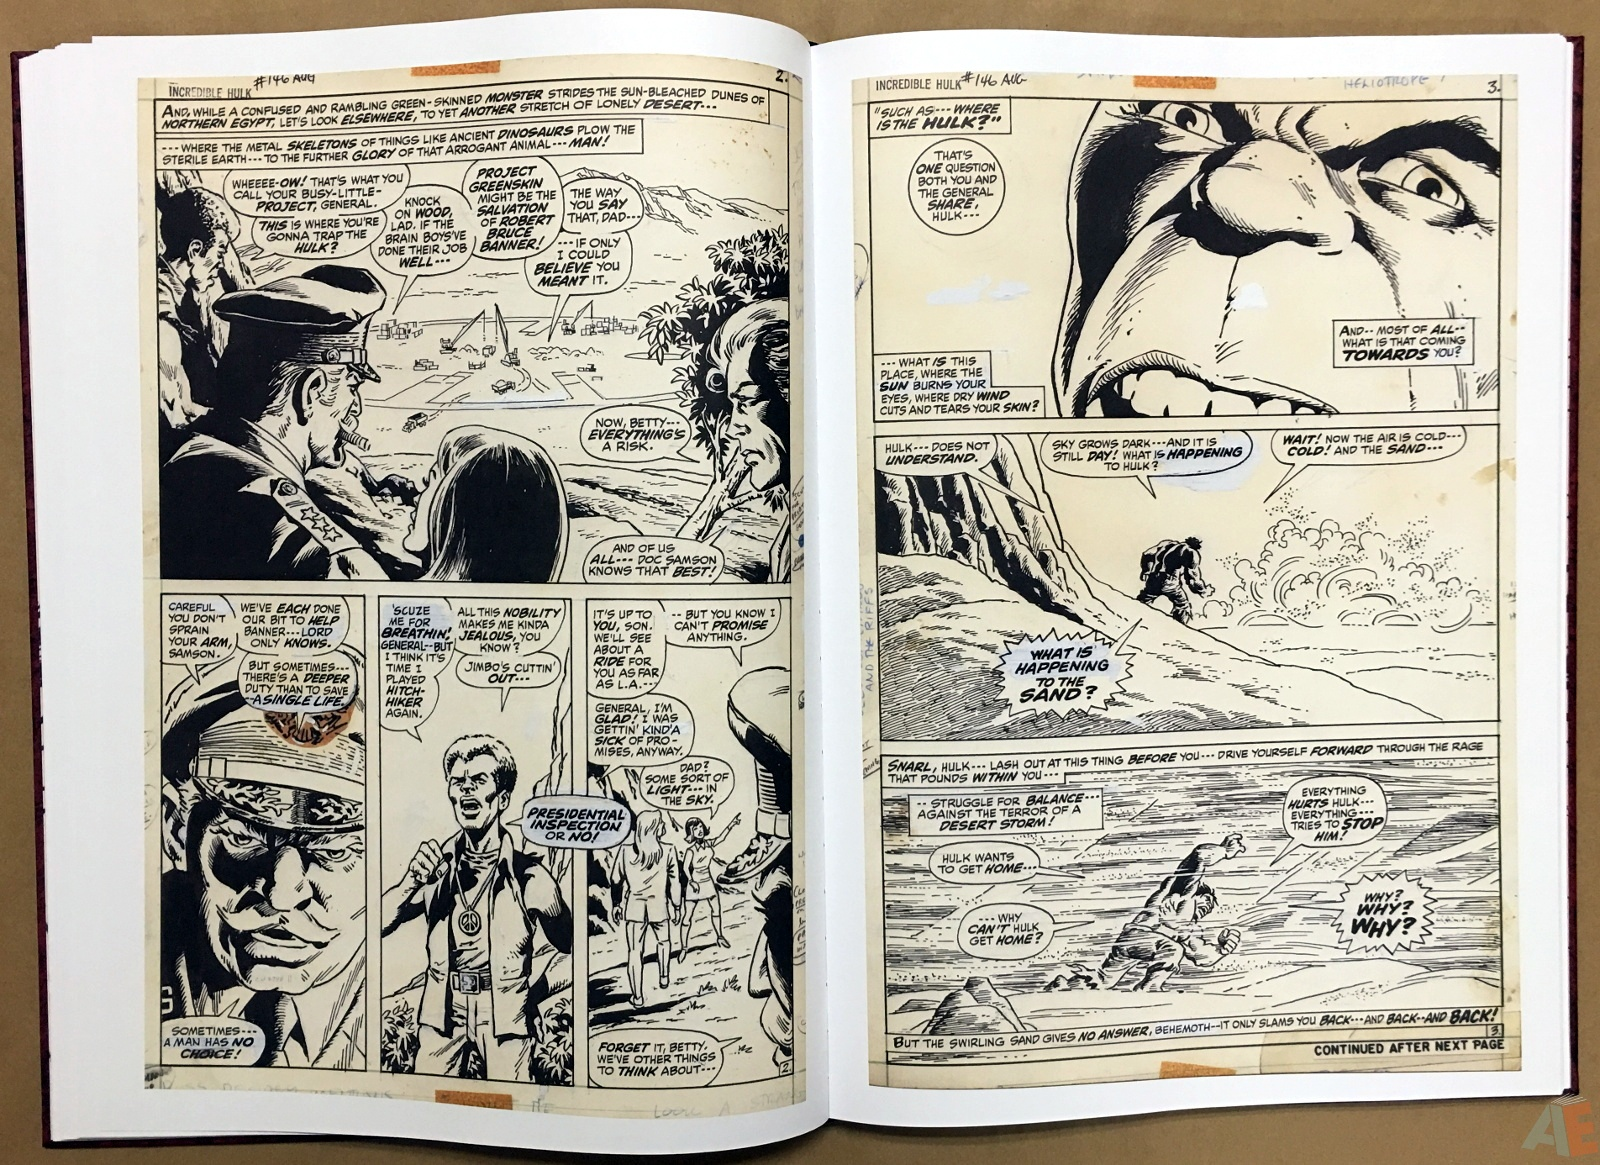 Herb Trimpe's The Incredible Hulk Artist's Edition 22